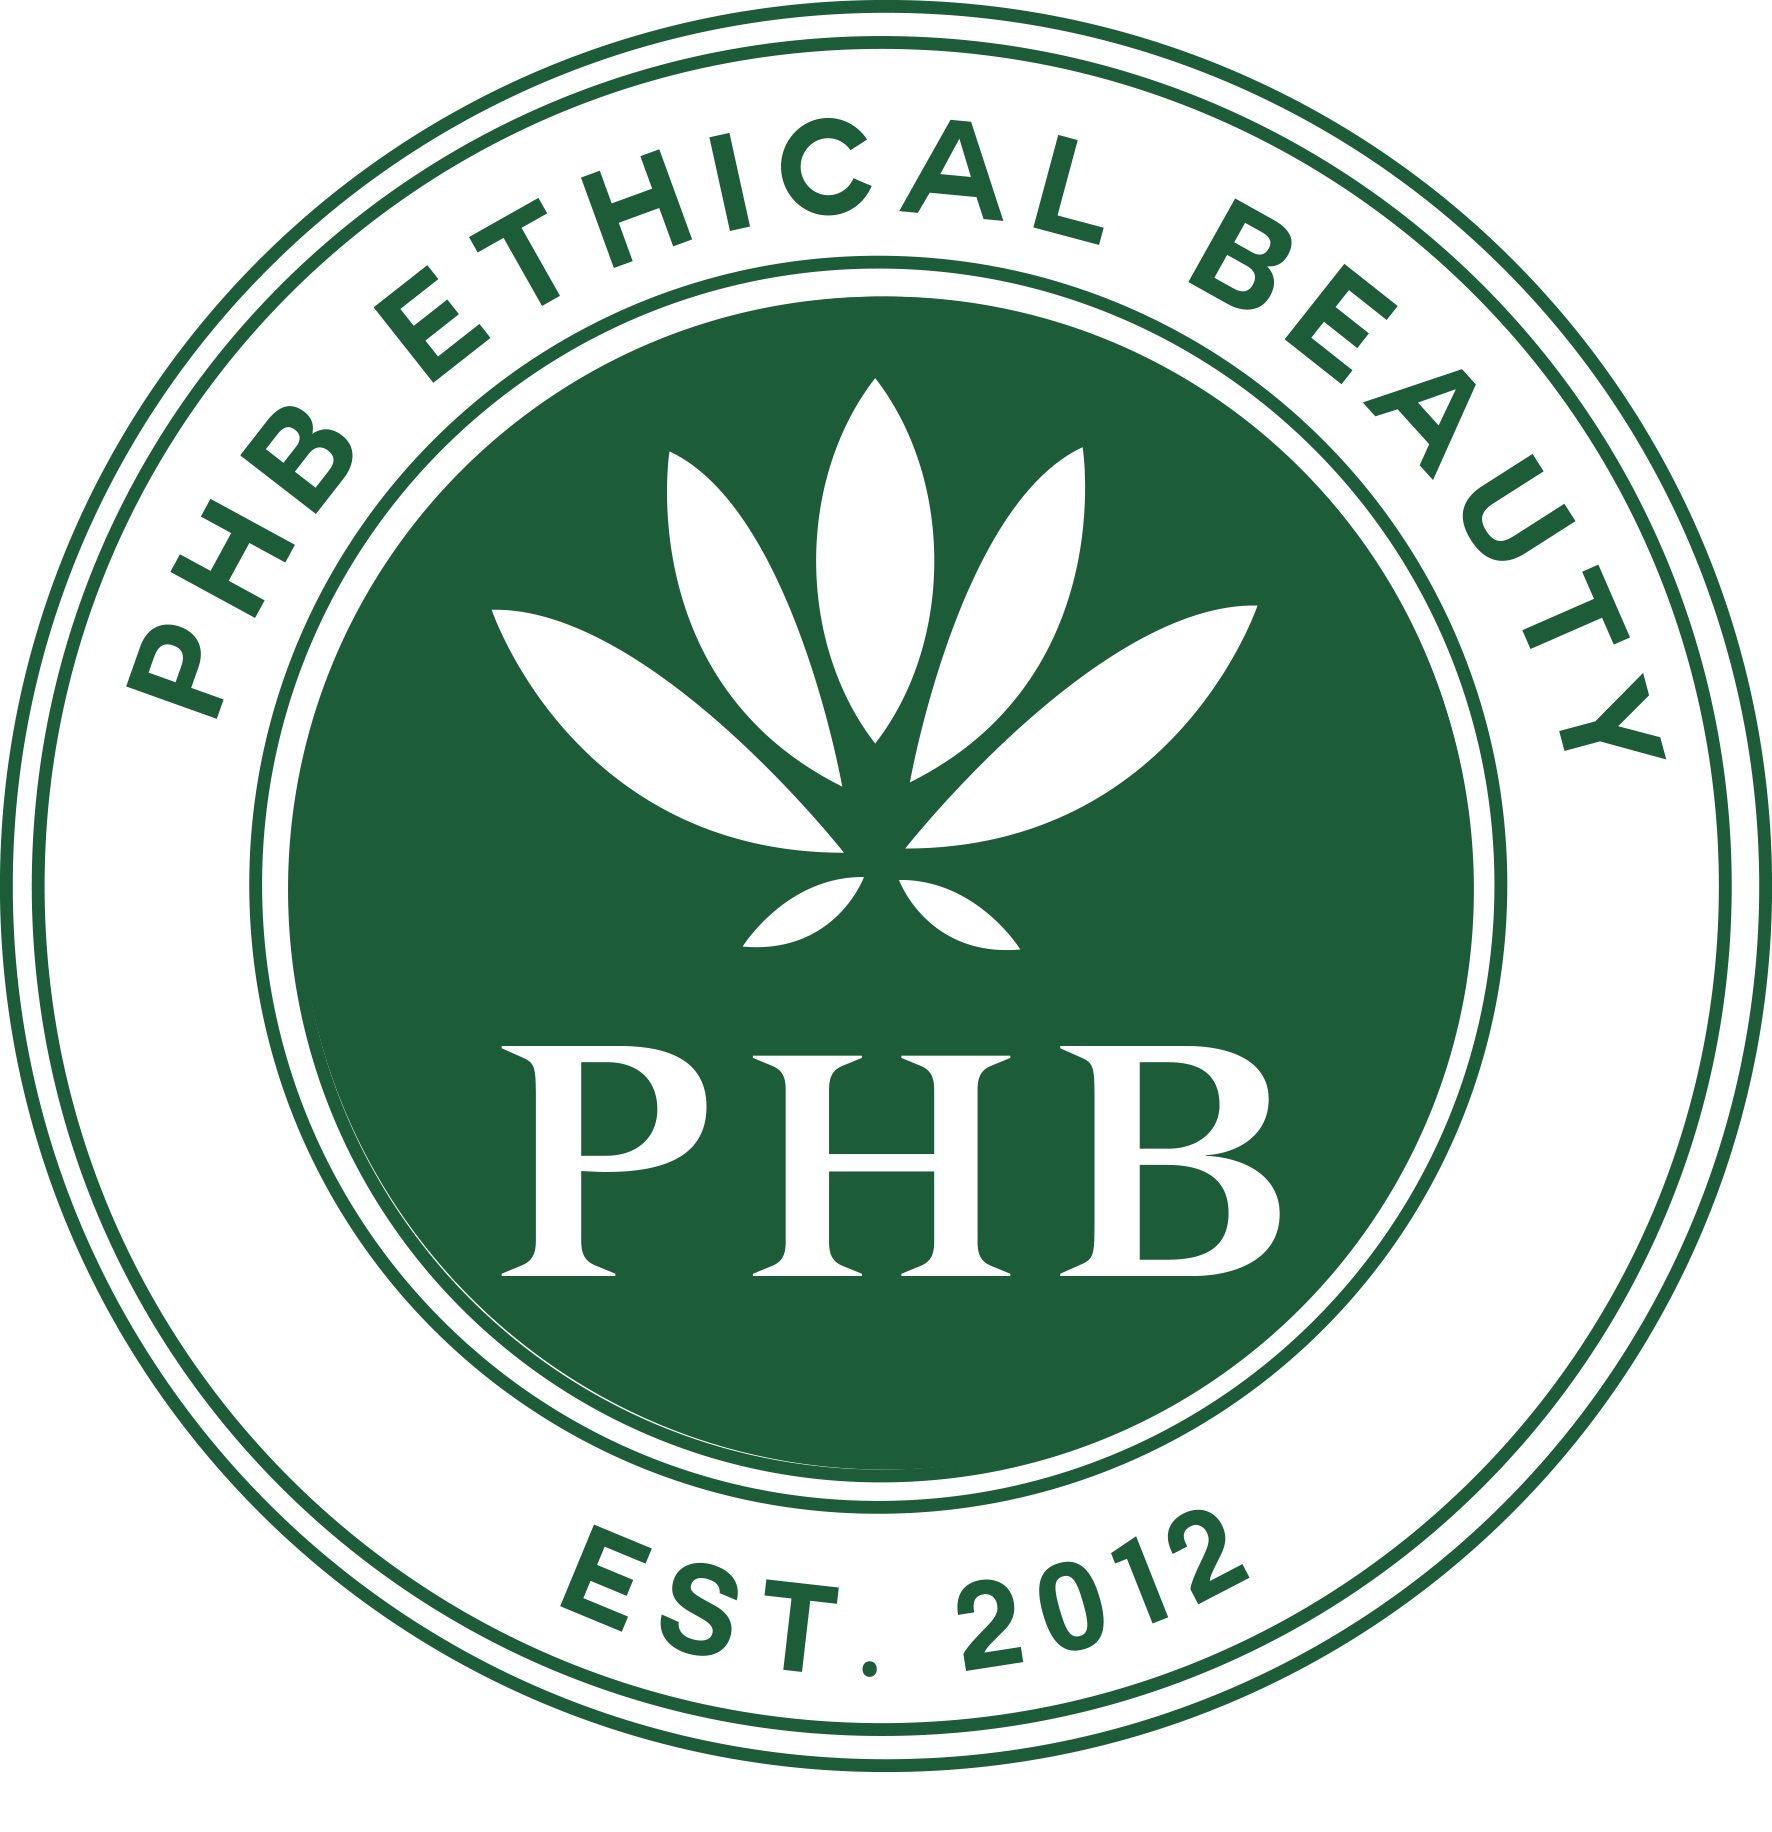 phb ethical beauty - PHB Ethical Beauty is a pioneering British family business with a revolutionary range of award winning ethical beauty products, we're home to the world's largest range of natural, vegan, cruelty free & alcohol free ( halal certified) beauty products.Our skin, hair & body care products are handmade in the UK and we do not test on animals. We are also Palm Oil free!Our range includes Skin, Hair & Body care, organic & mineral cosmetics and male grooming products. Our products are so pure they make great natural remedies for sensitive skin and conditions such as eczma, psoriasis & acne!PHB Ethical Beauty is the creation of 3 caring and passionate entrepreneurs who believe the cosmetics industry needs big change and that 100% plant powered & compassionate beauty products will improve your skin, your health and your well-being.